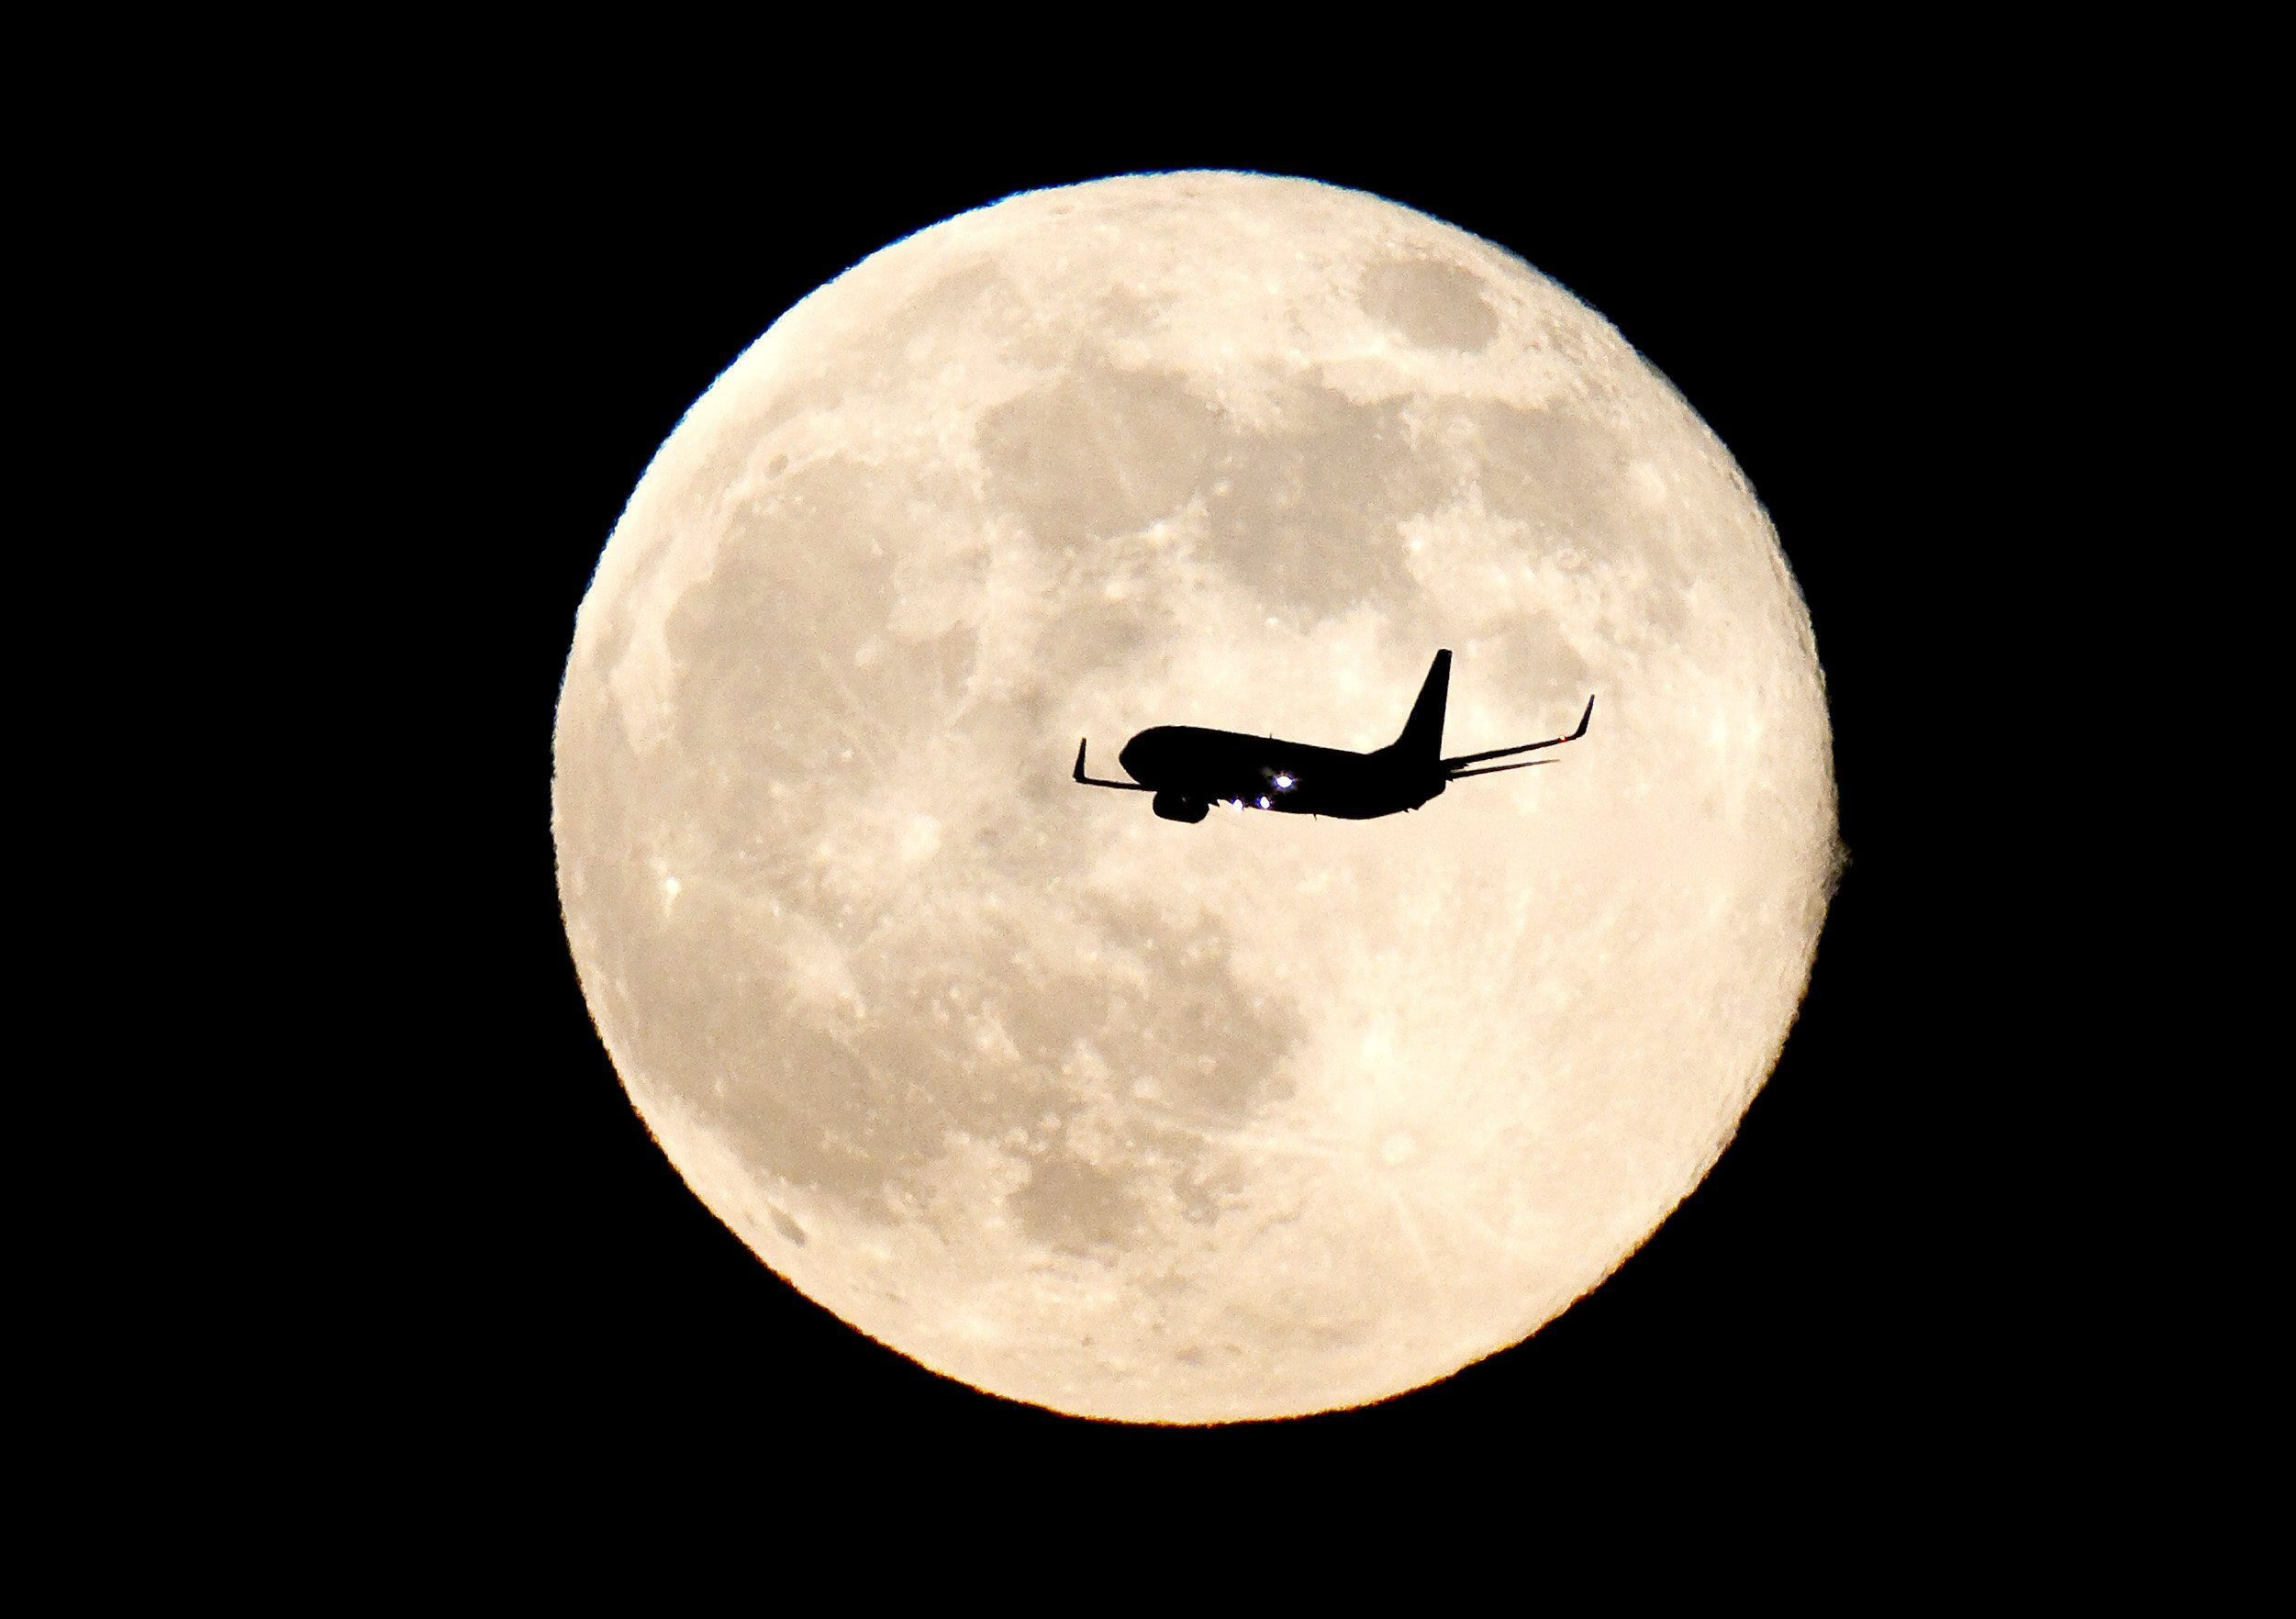 About 10 per cent of Britons believe the Moon is closer than Australia (Picture: EPA/CHEMA MOYA)